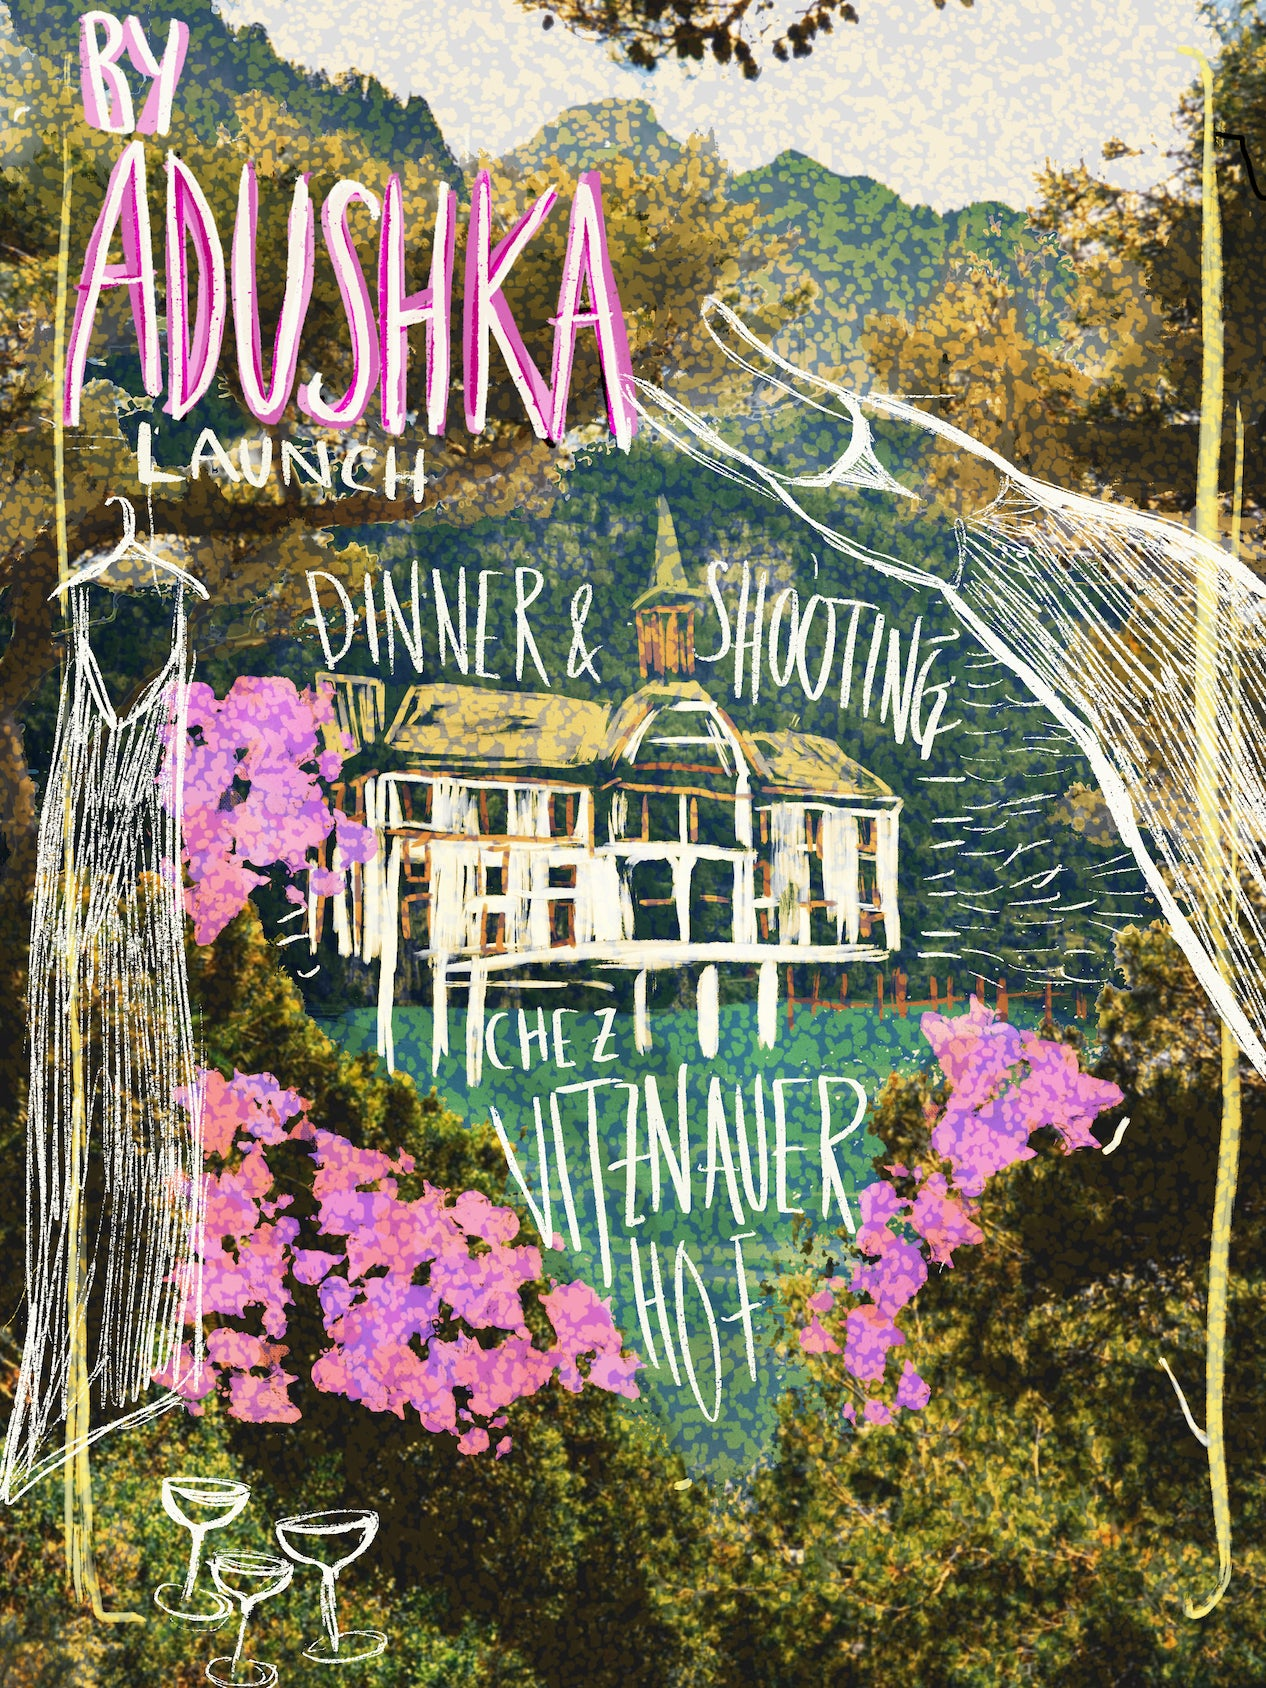 EVENTS - By Adushka Launch